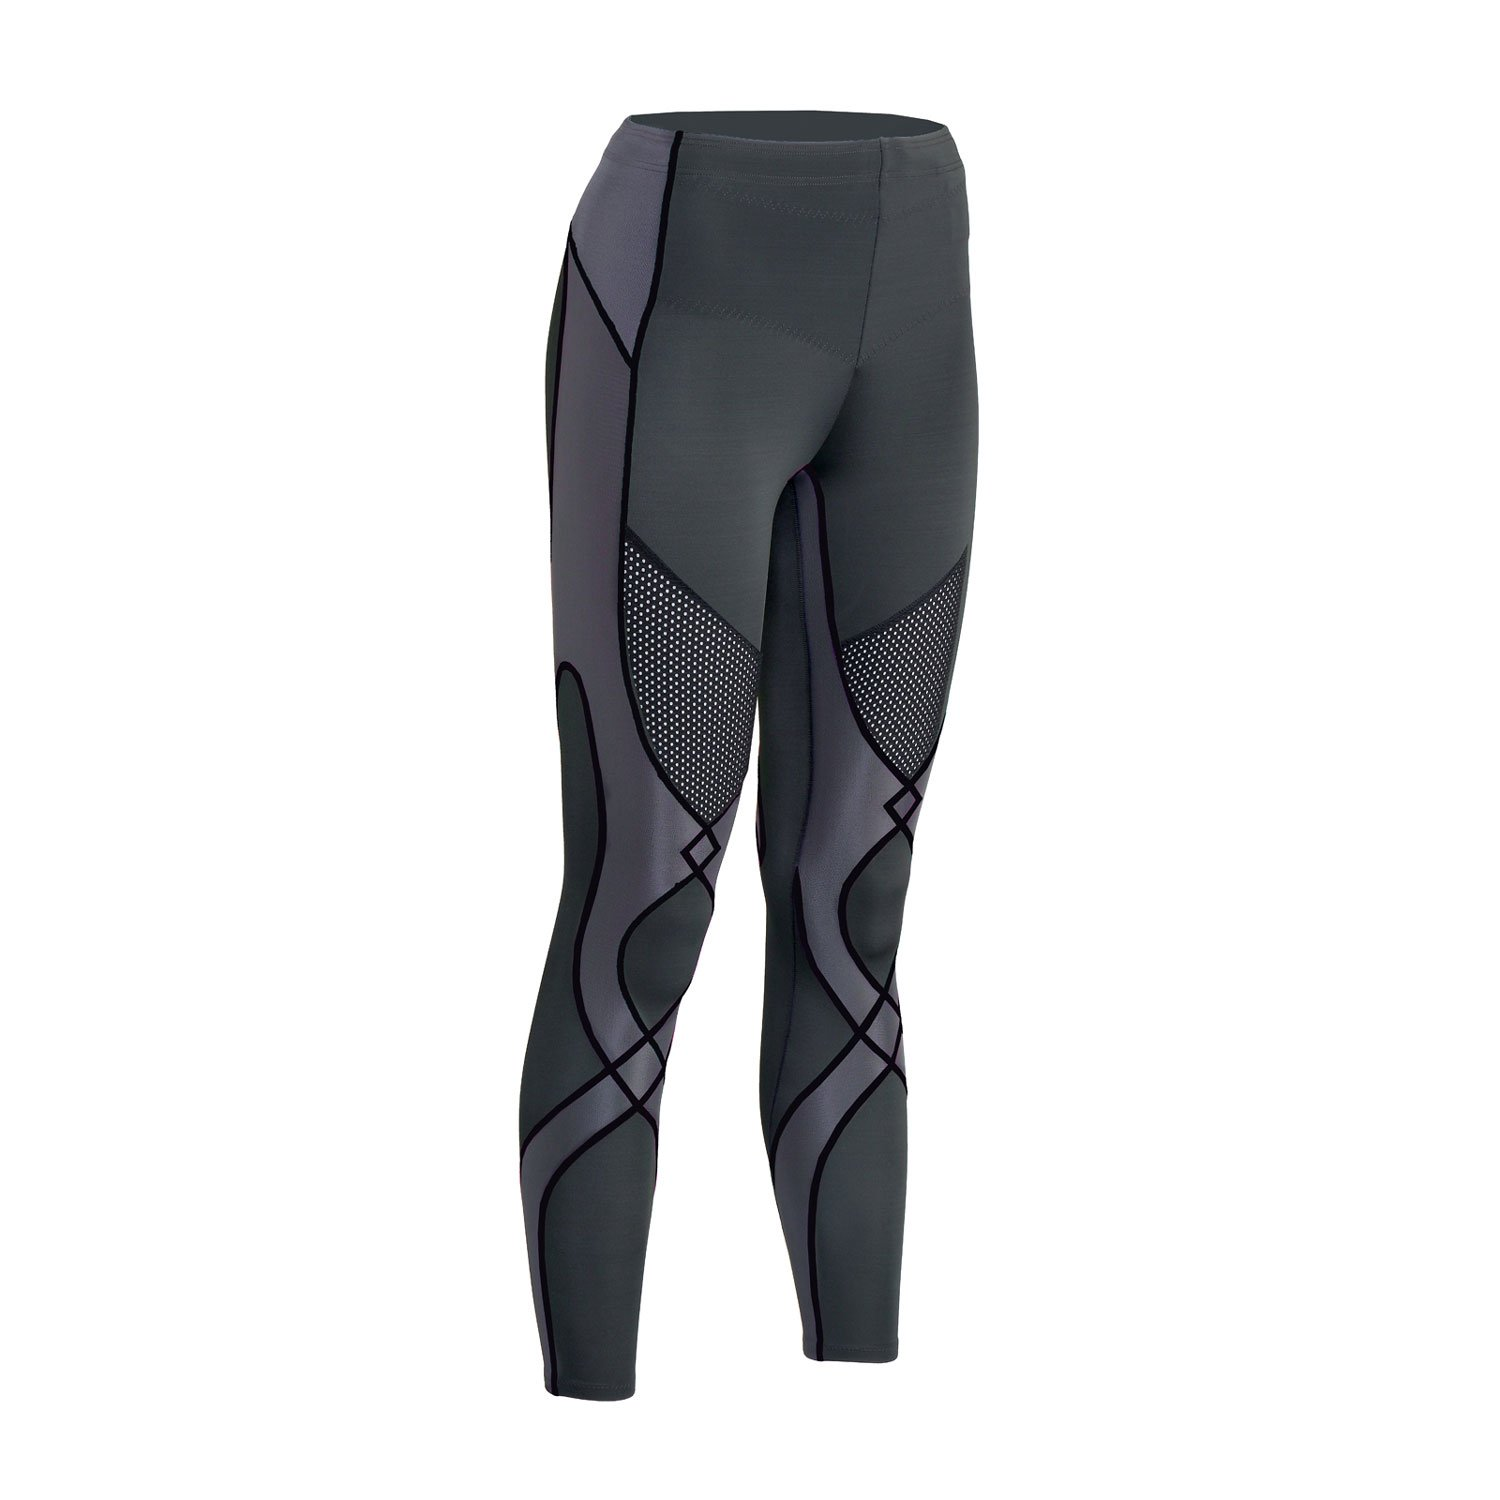 CW-X Women's Mid Rise Full Length Stabilyx Ventilator Cooling Compression Tights 127809-085-P